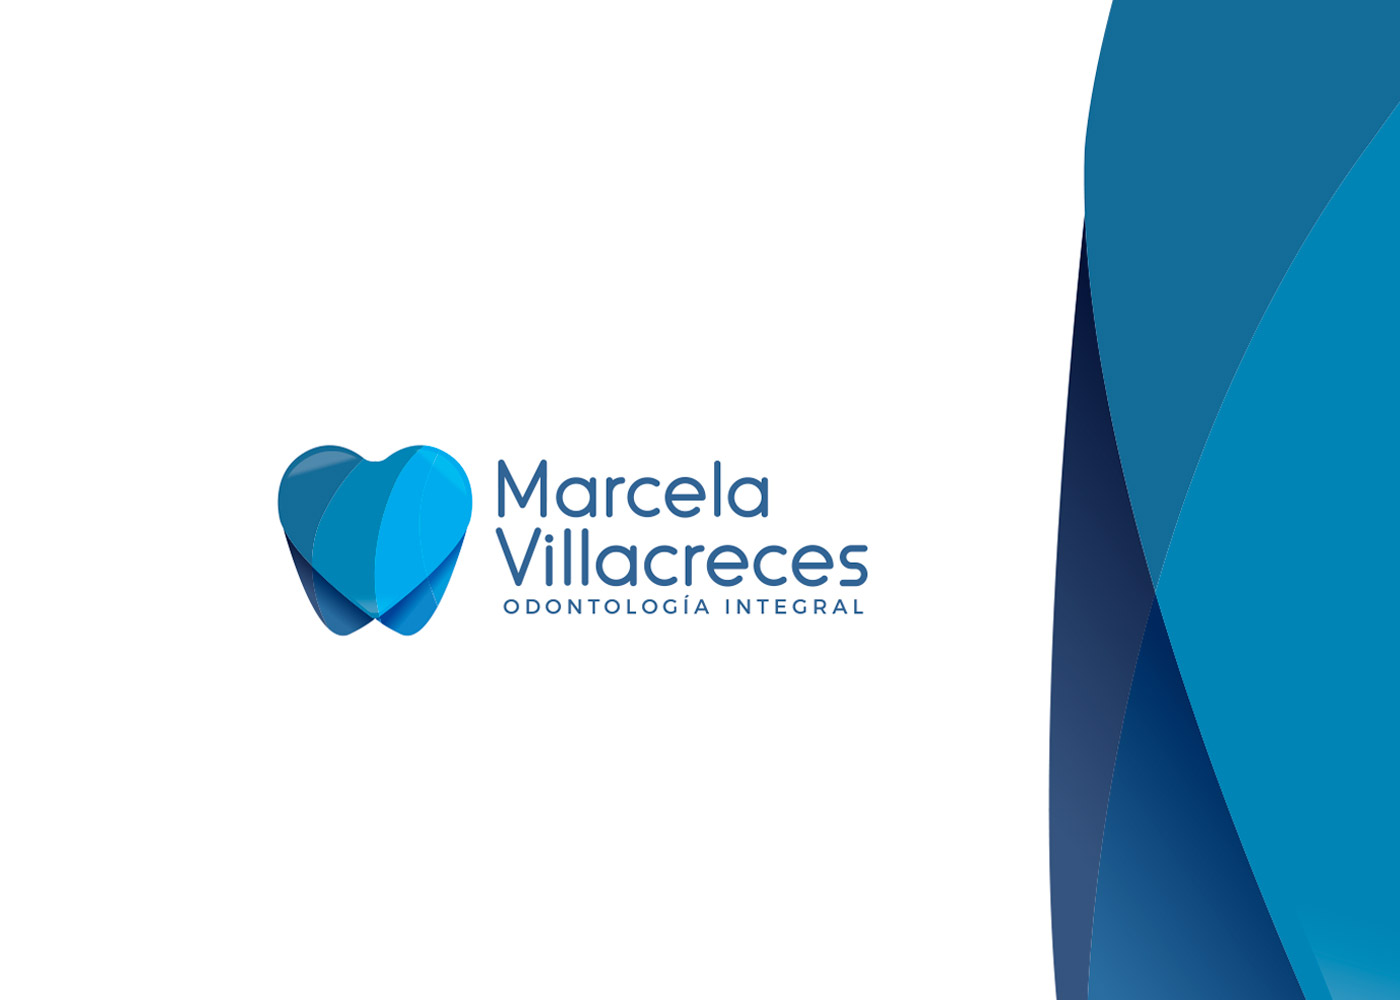 marcela-villacreces-1